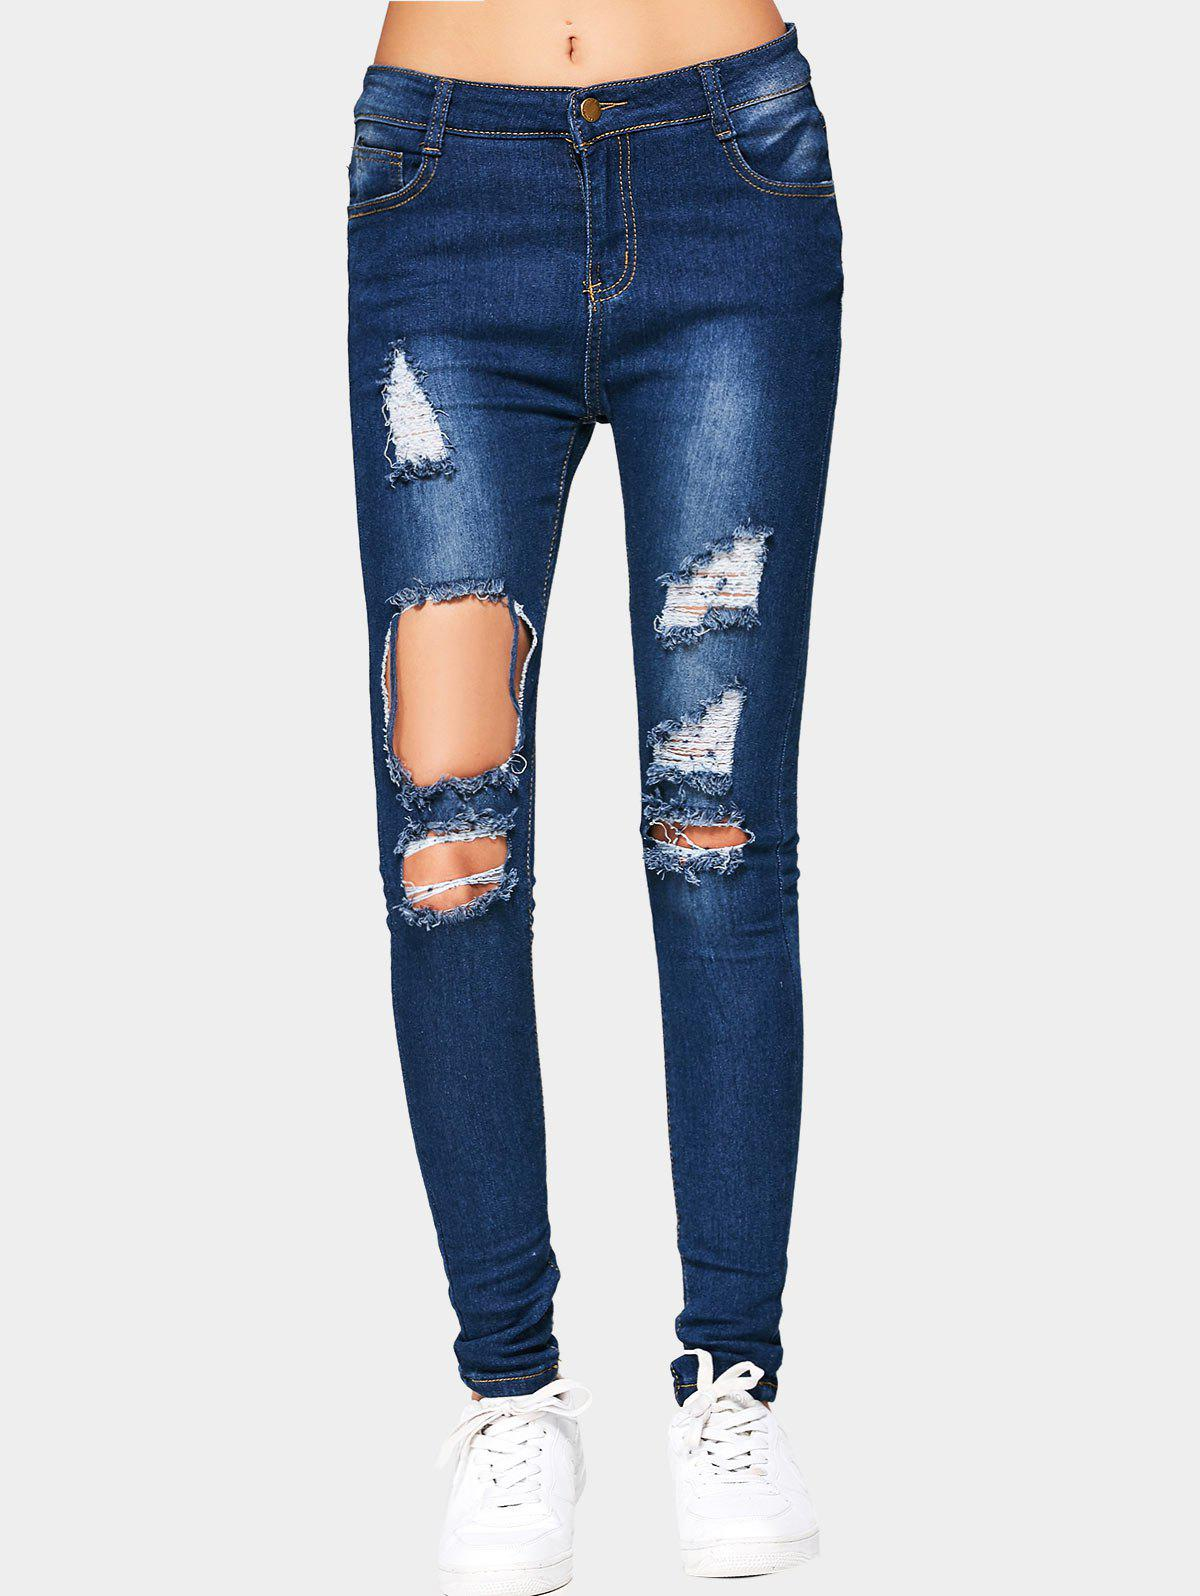 Cut Out Ripped Jeans 222360204